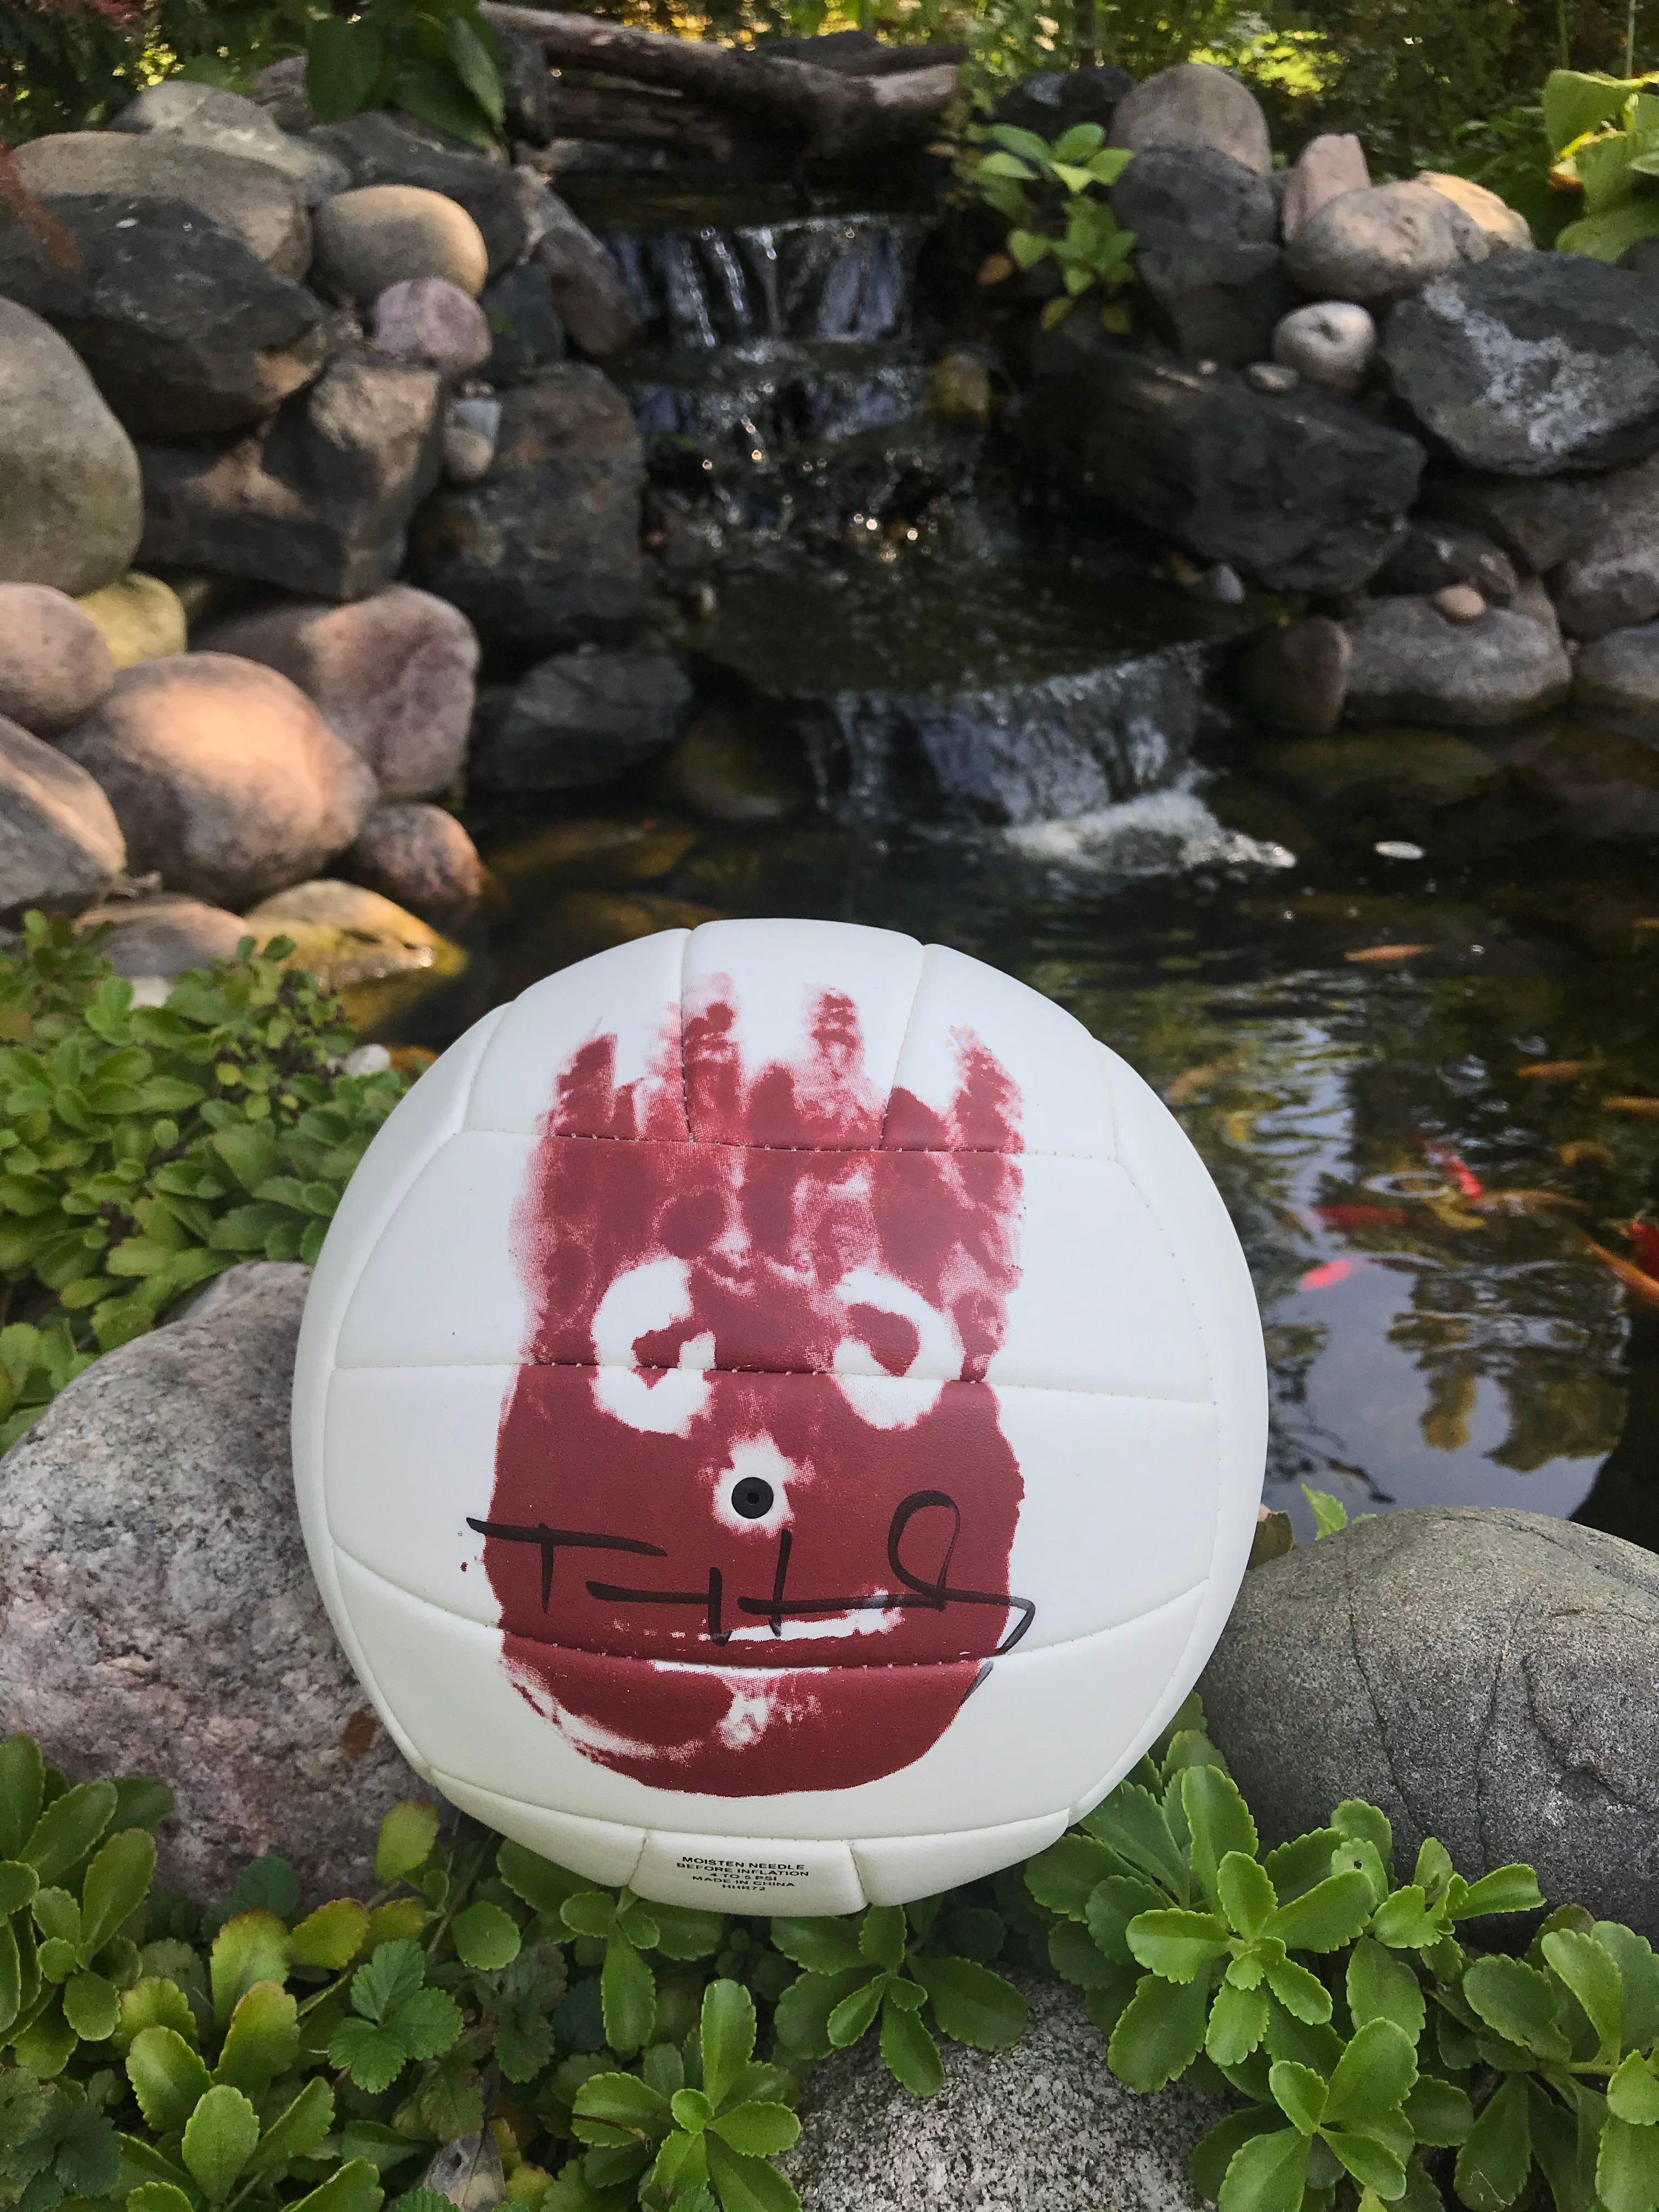 A Wilson volleyball autographed by Tom Hanks